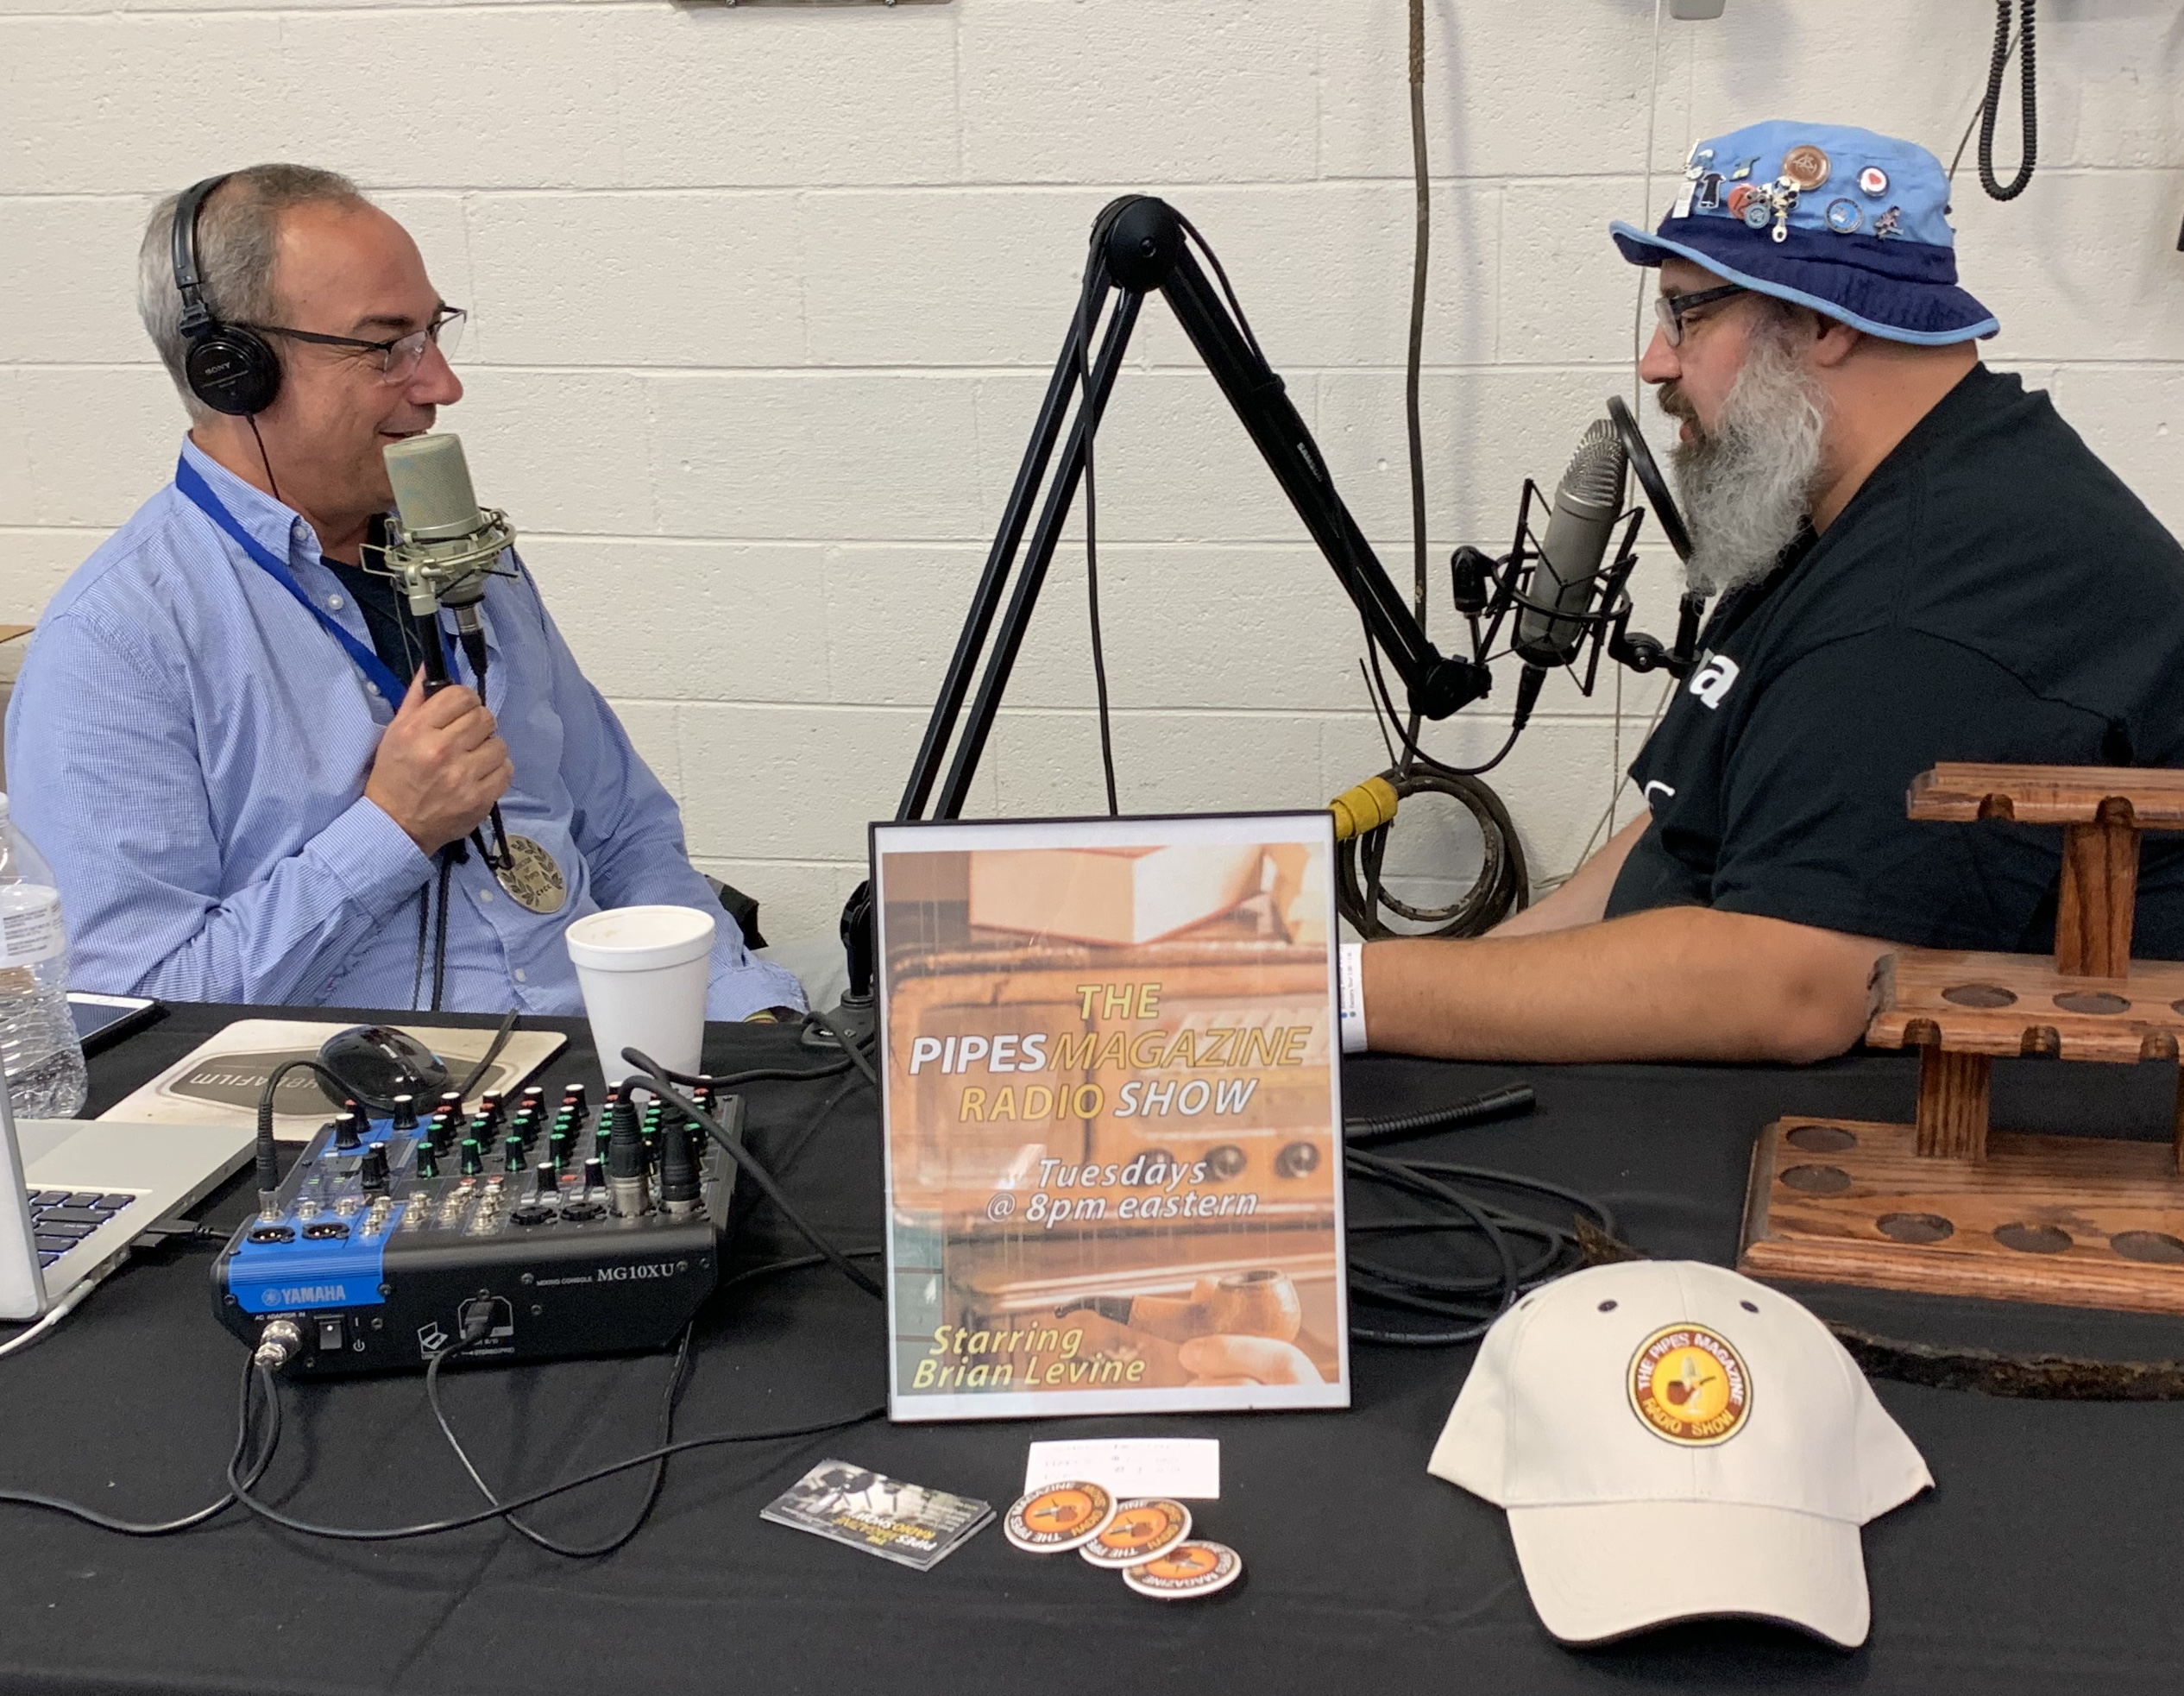 Brian Levine (L) interviews Andre Tessier at the Richmond Show